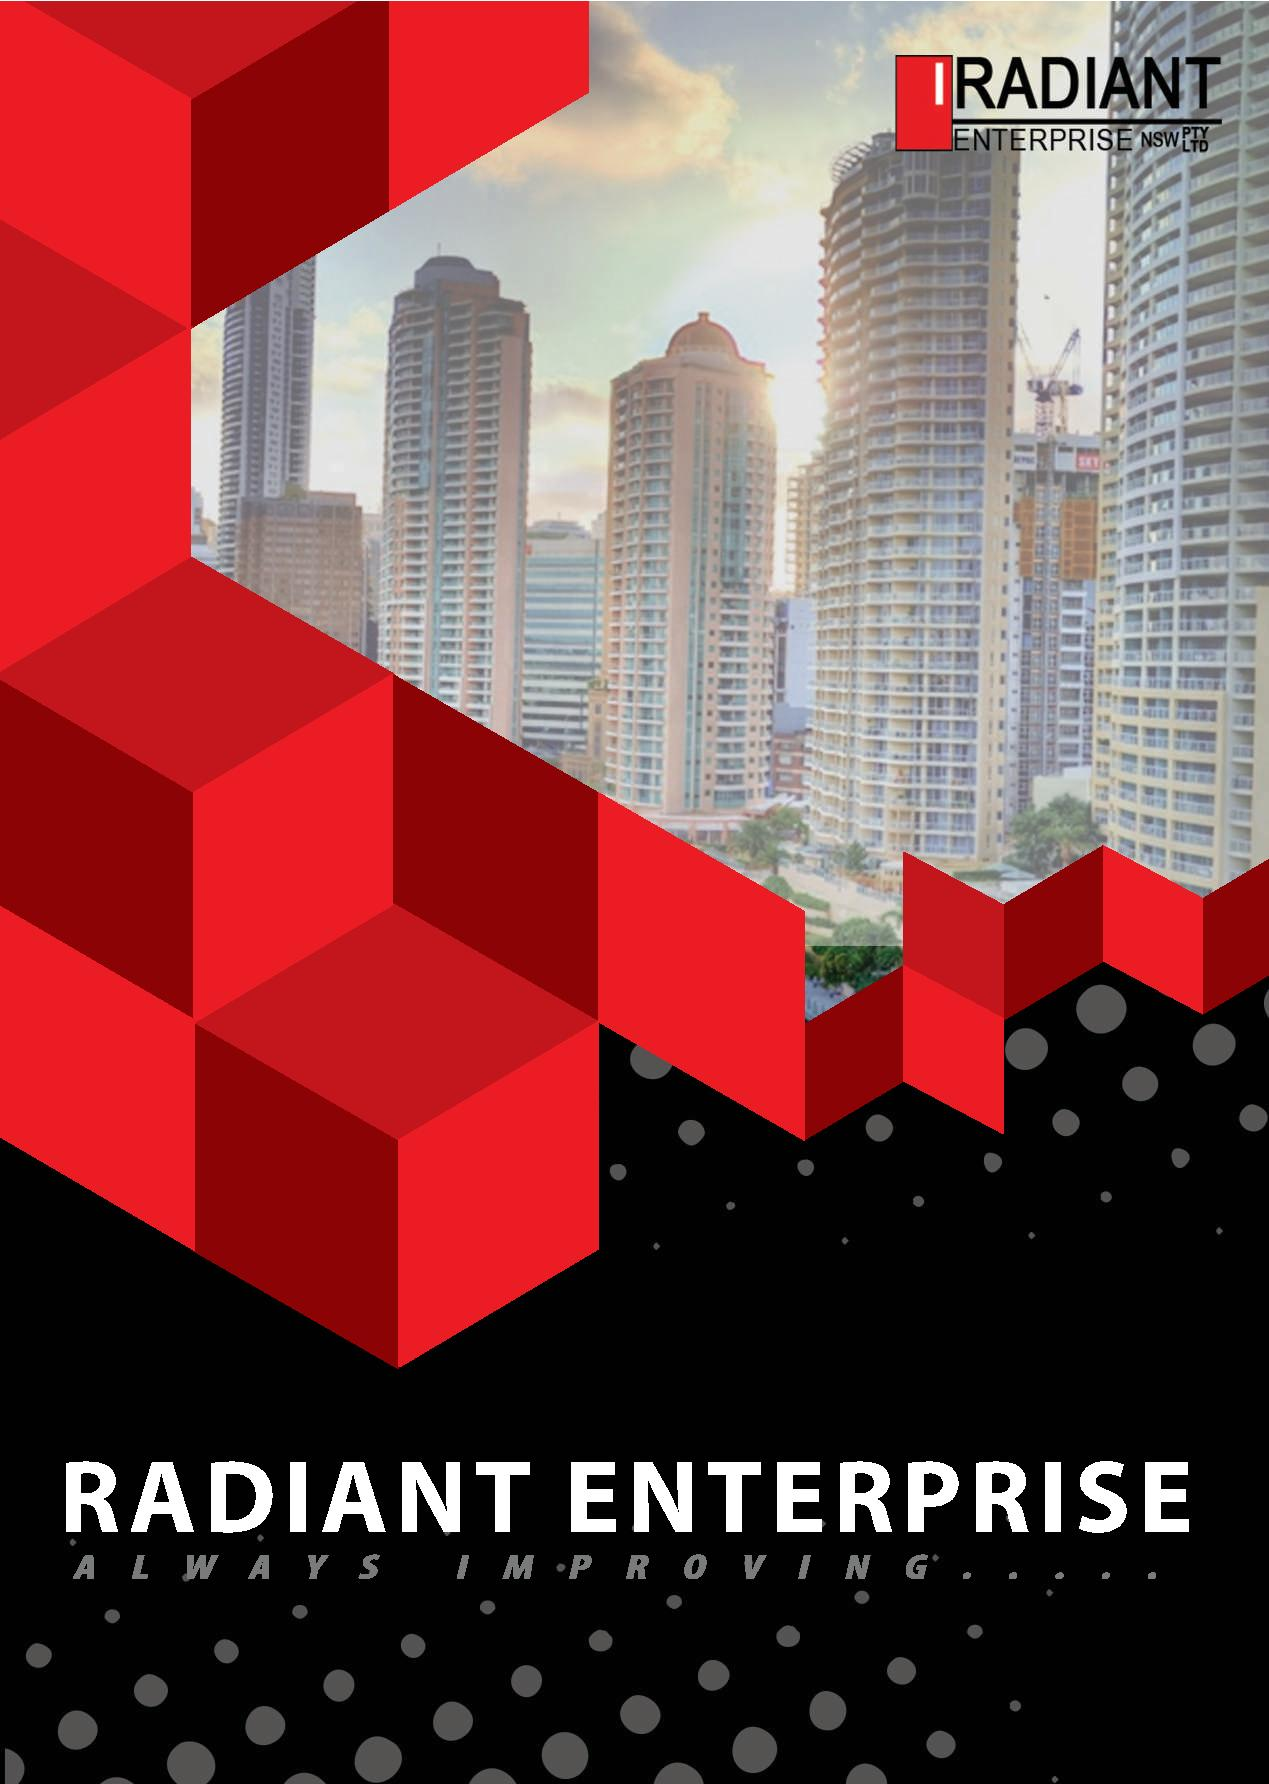 Radiant enterprise catalogue1